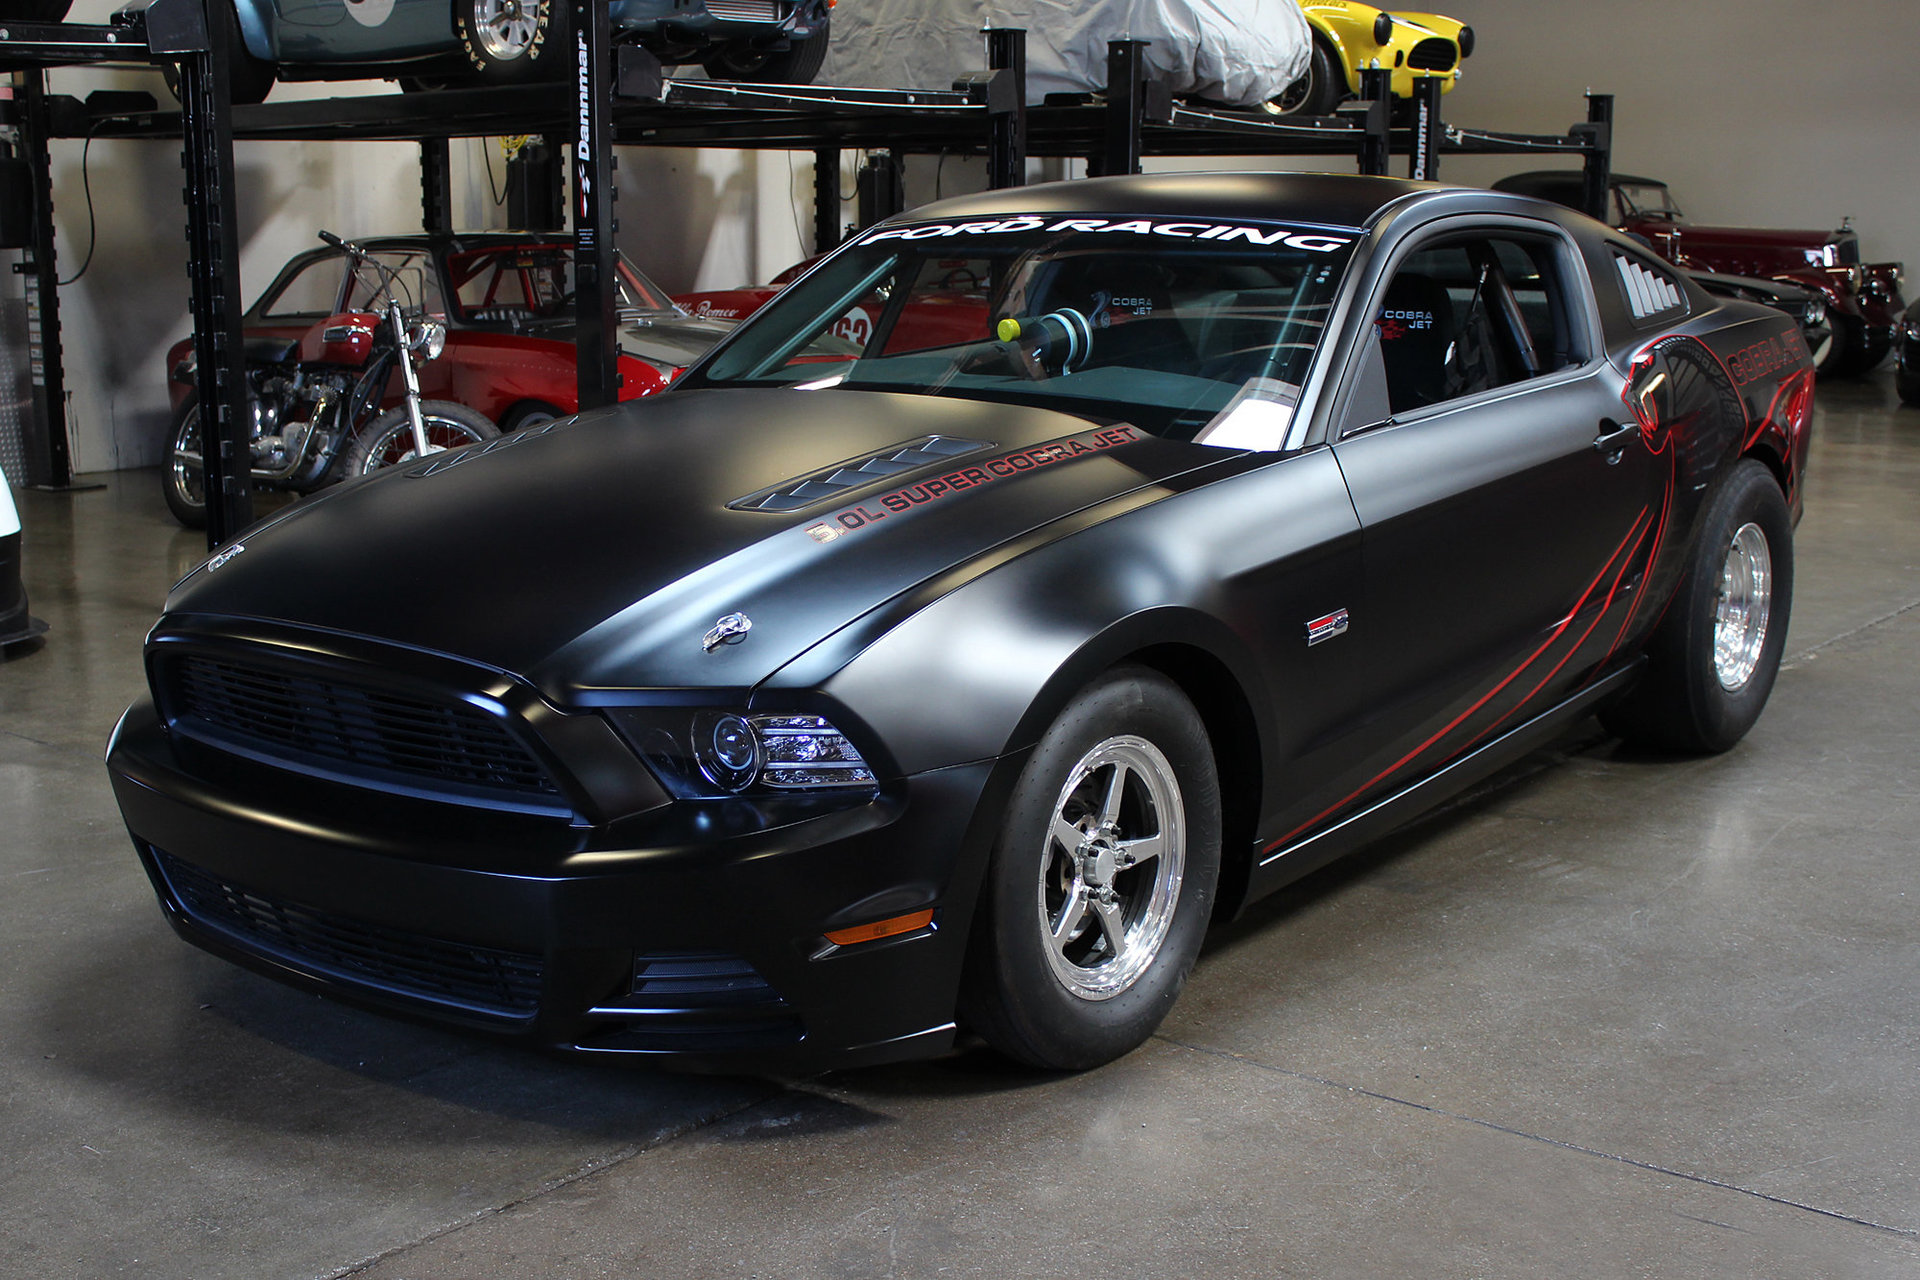 2014 ford mustang cobra jet for sale 79963 mcg. Black Bedroom Furniture Sets. Home Design Ideas